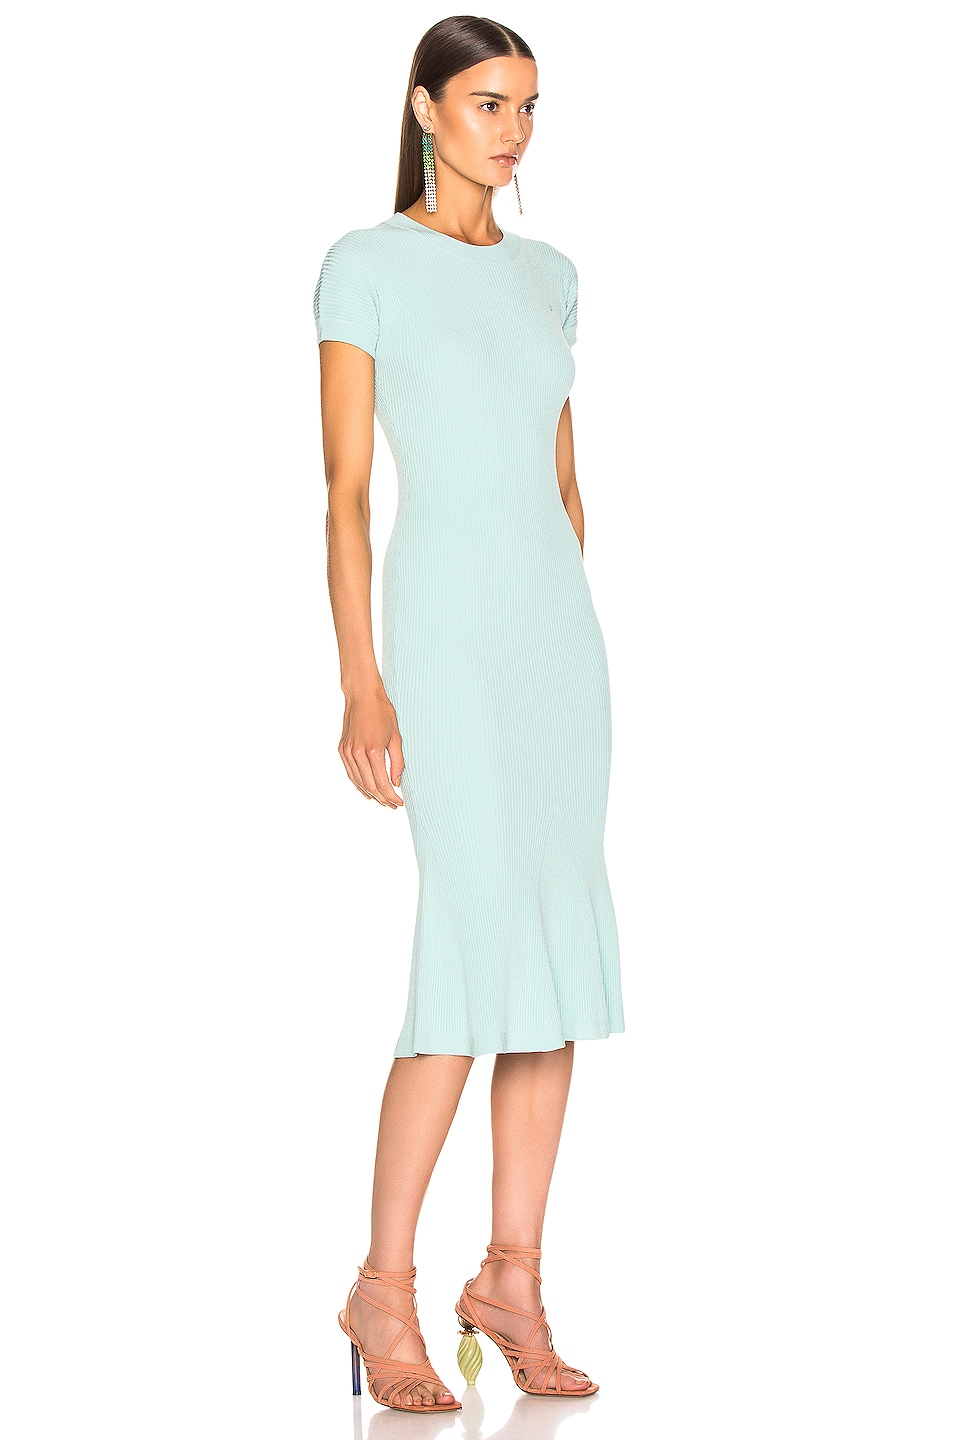 Image 2 of Brandon Maxwell Shortsleeve Knit Fit & Flare Dress in Aqua Blue